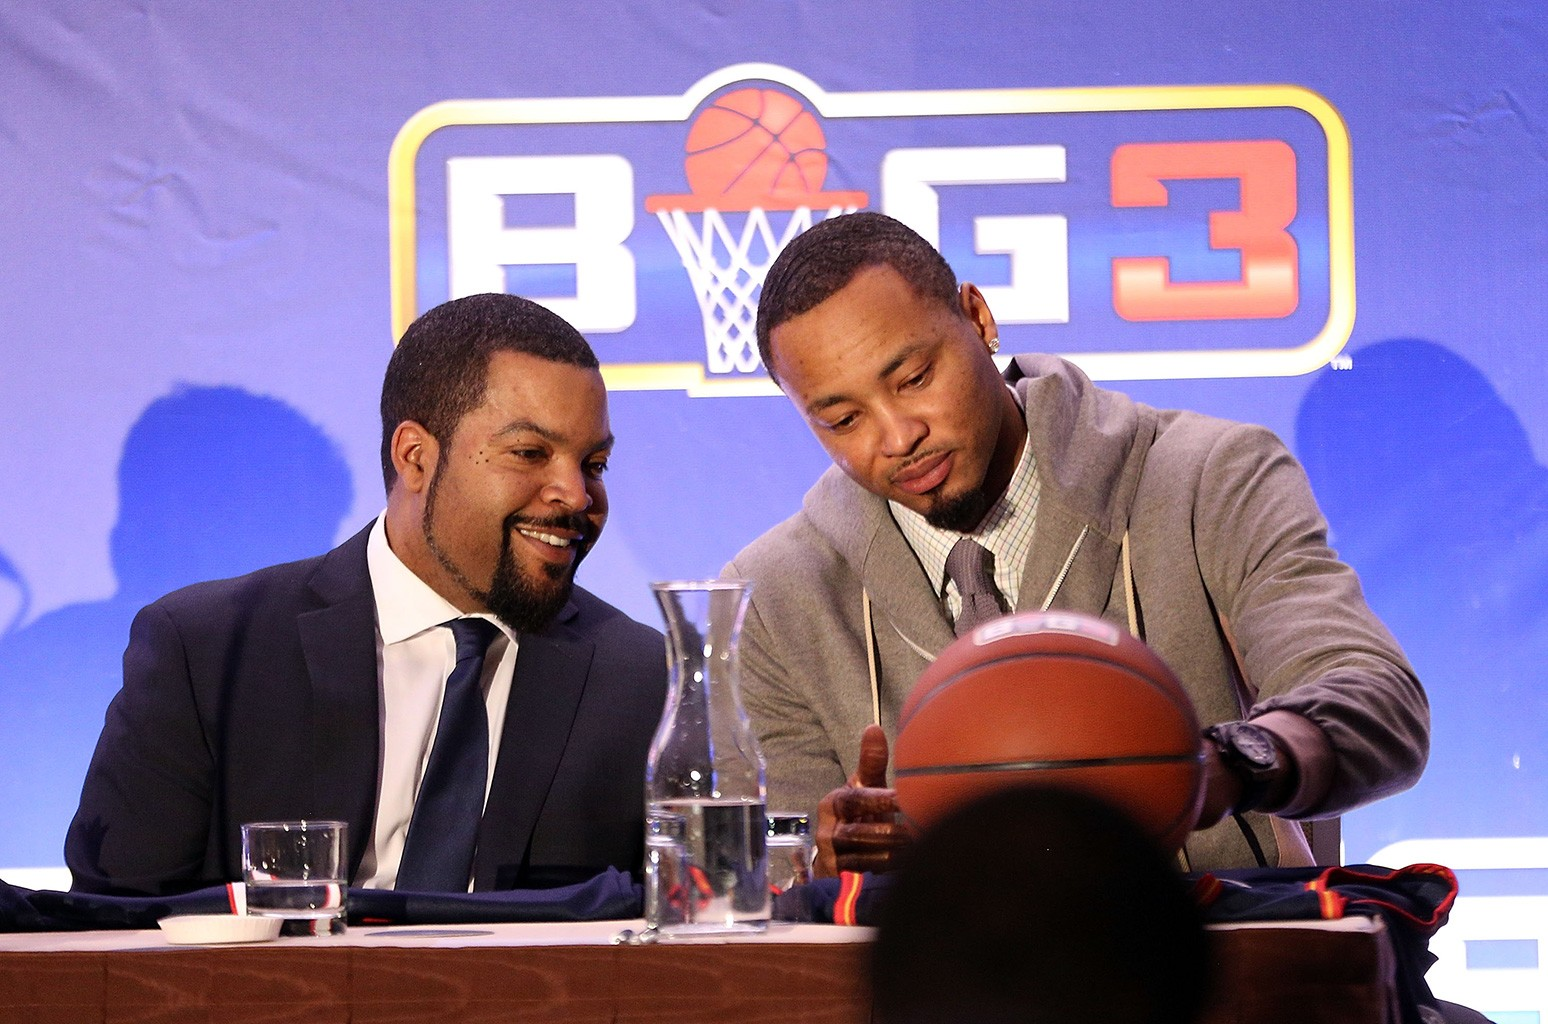 Ice Cube and Rashard Lewis attend BIG3 Press Conference on Jan. 11, 2017 in New York City.